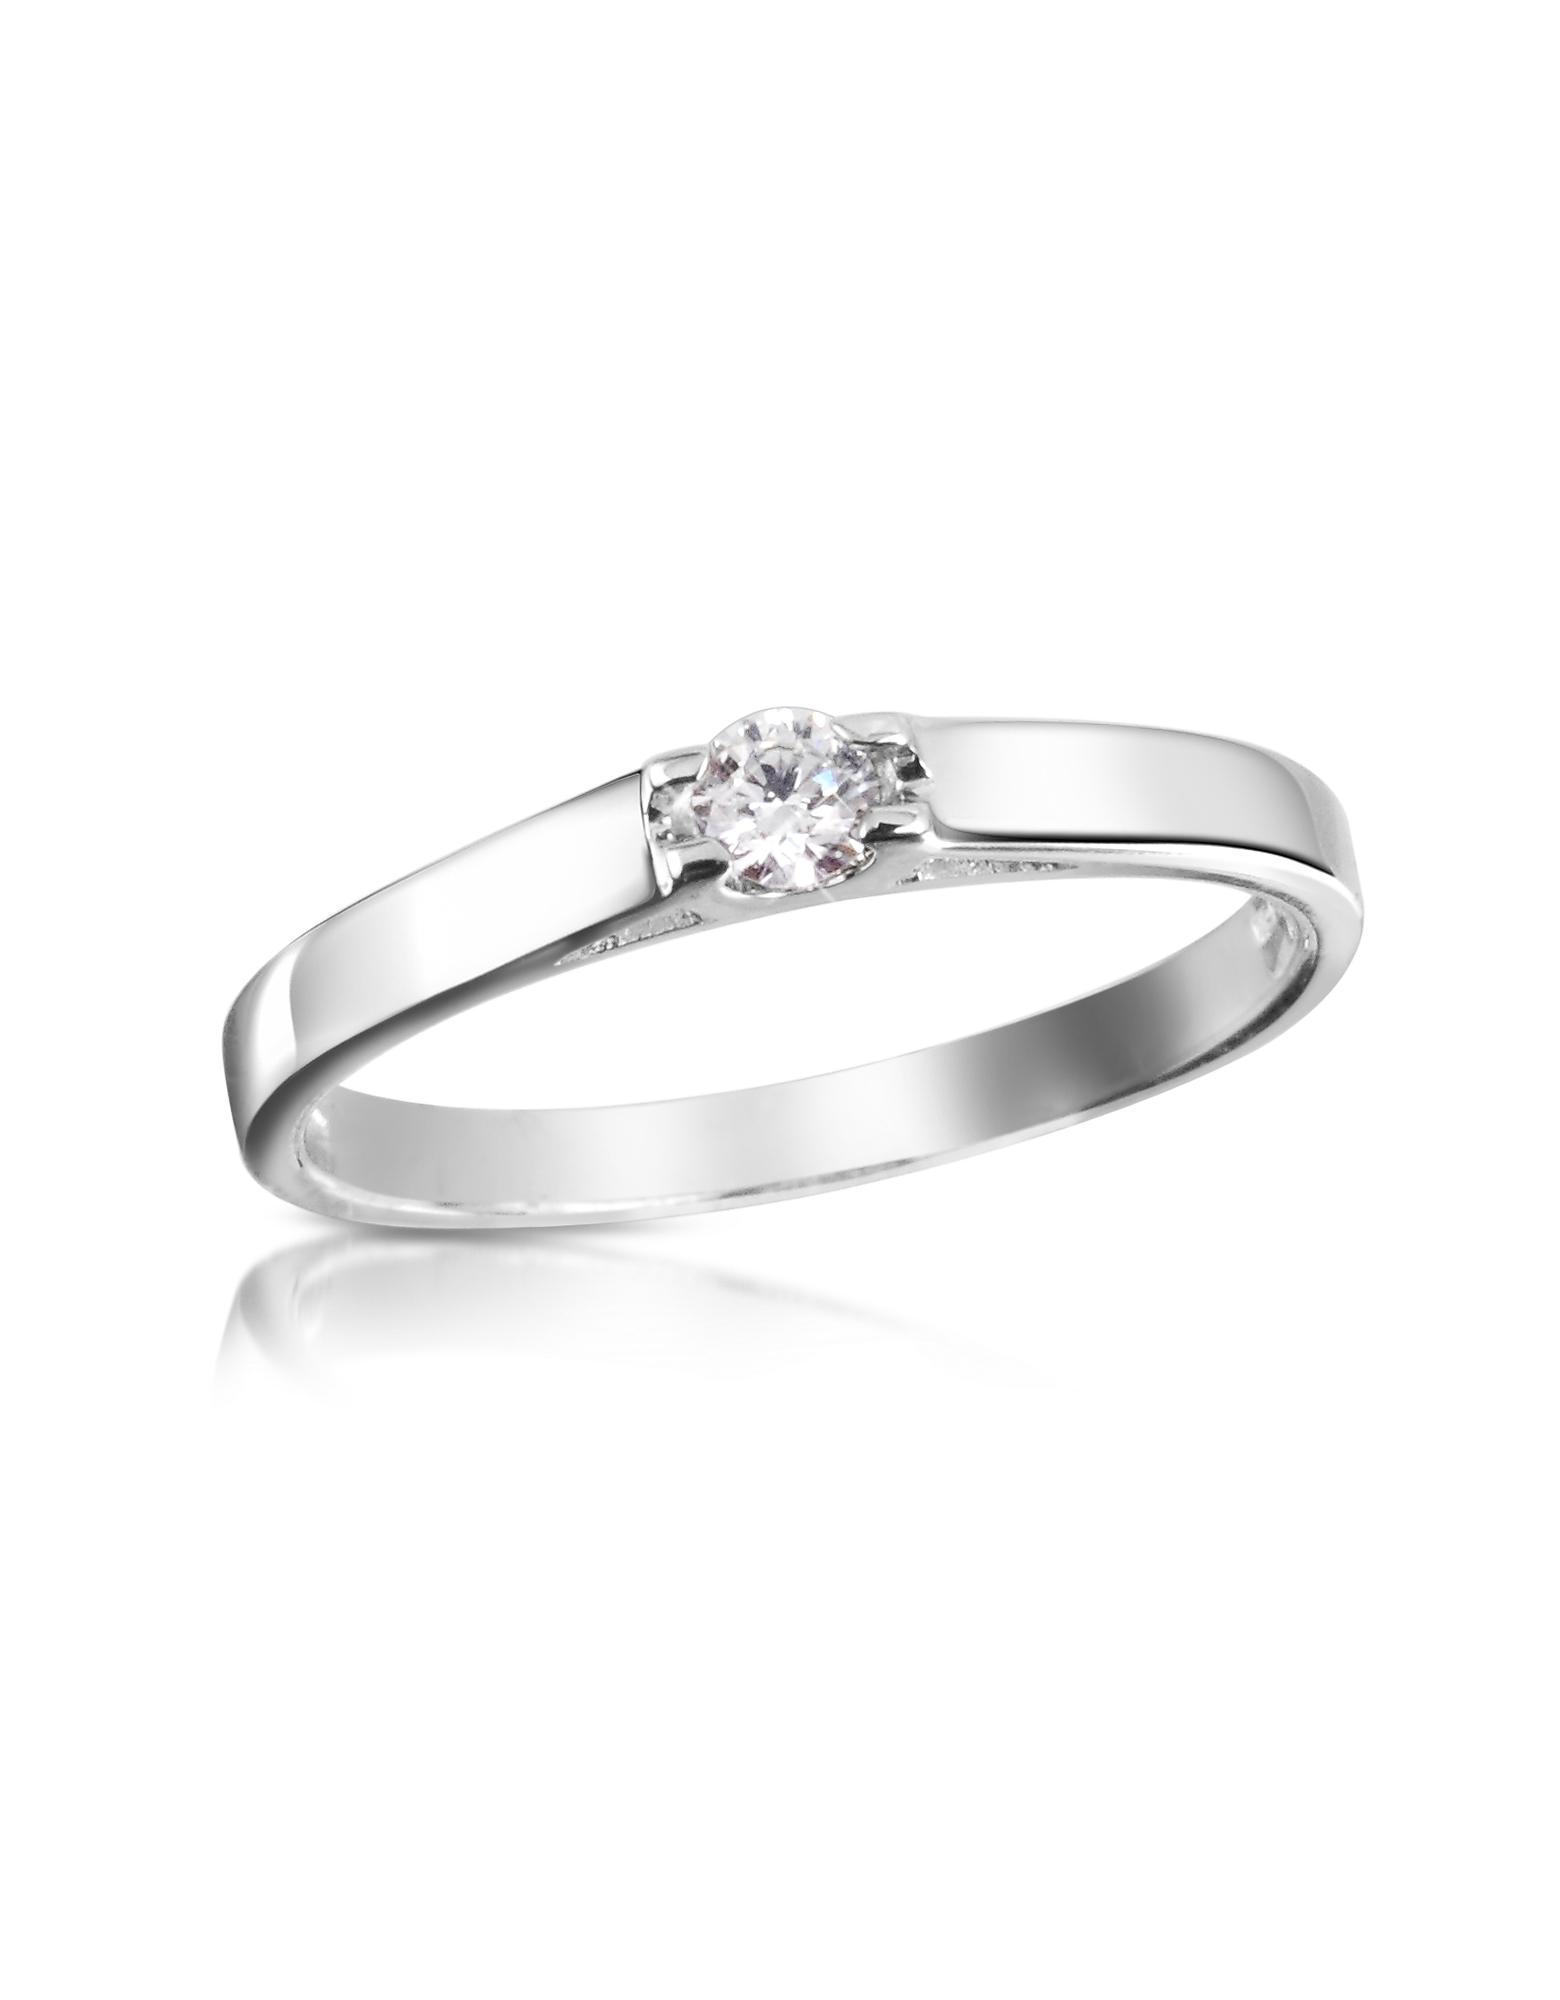 Forzieri Rings, 0.10 ctw Diamond Solitaire Ring